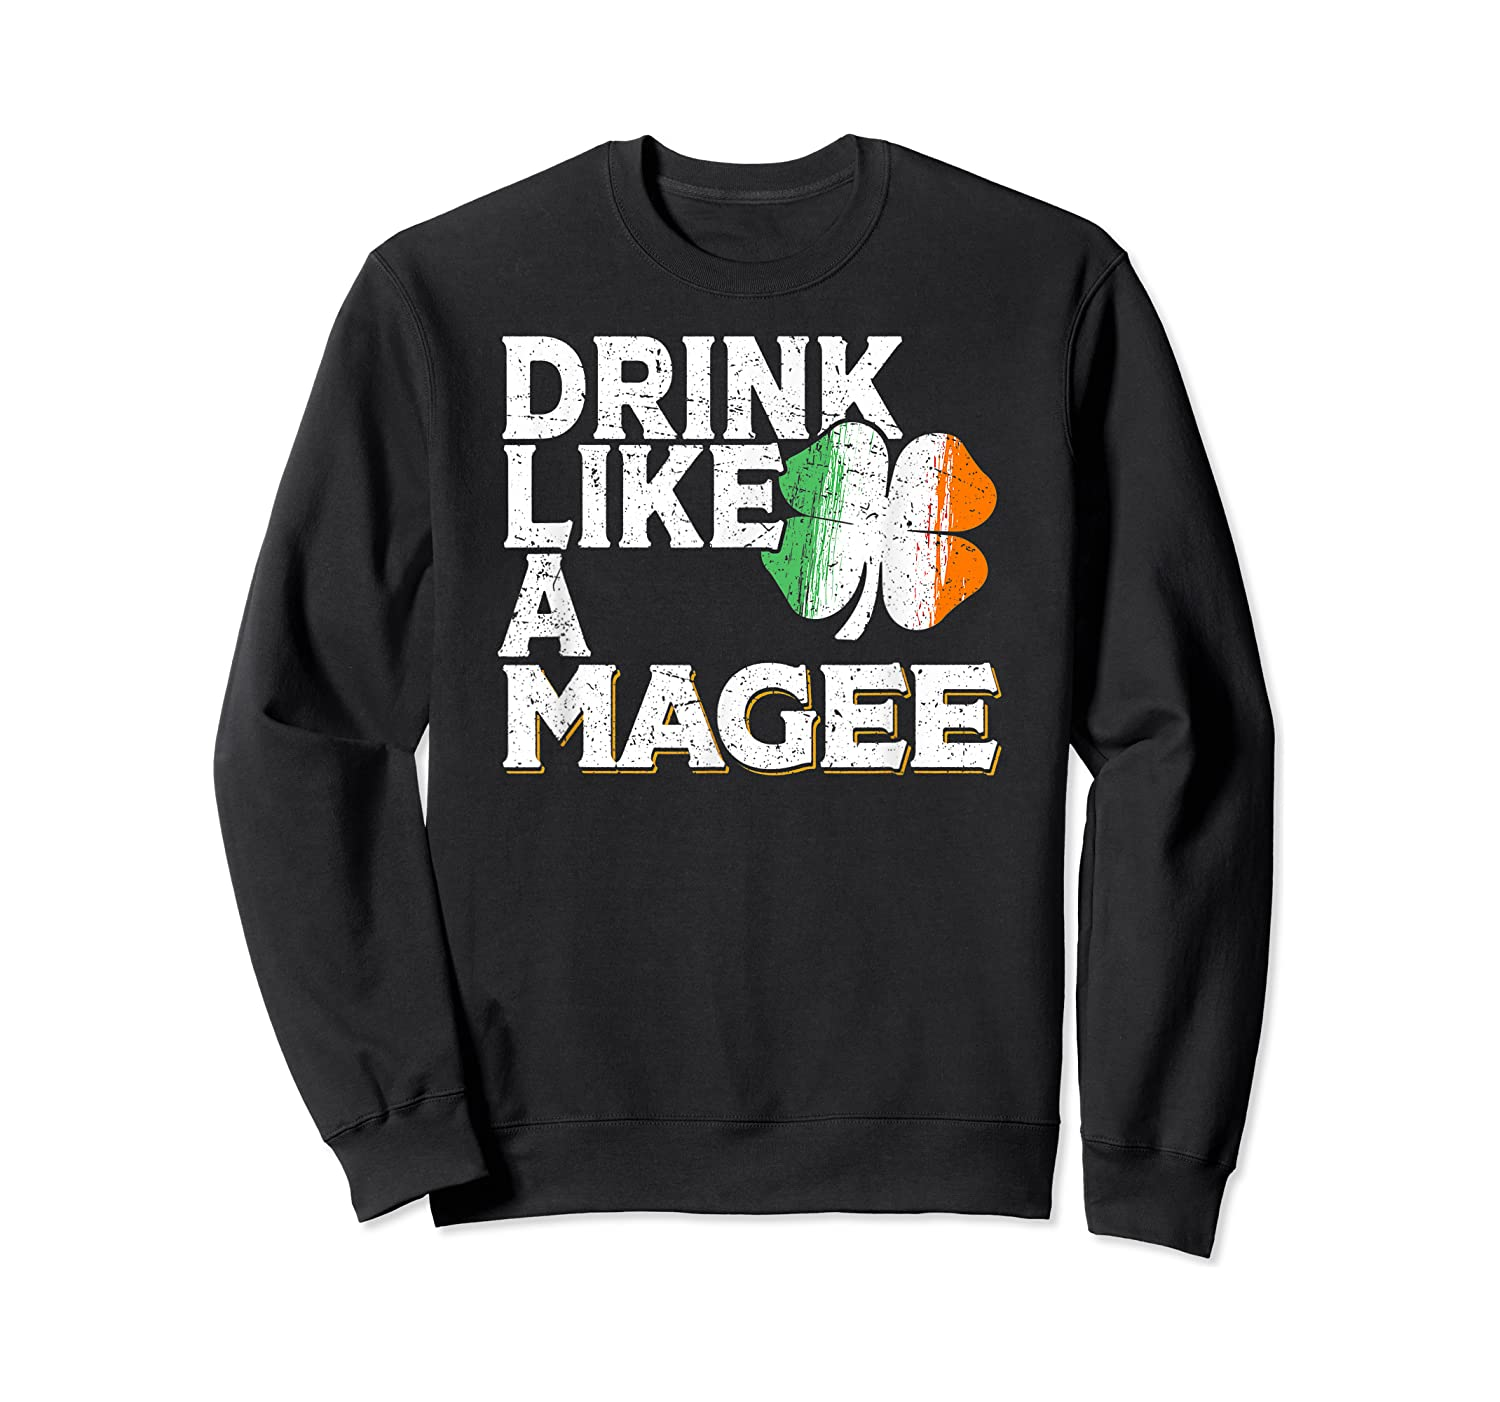 Drink Like A Magee St Patrick's Day Beer Gift Design Shirts Crewneck Sweater